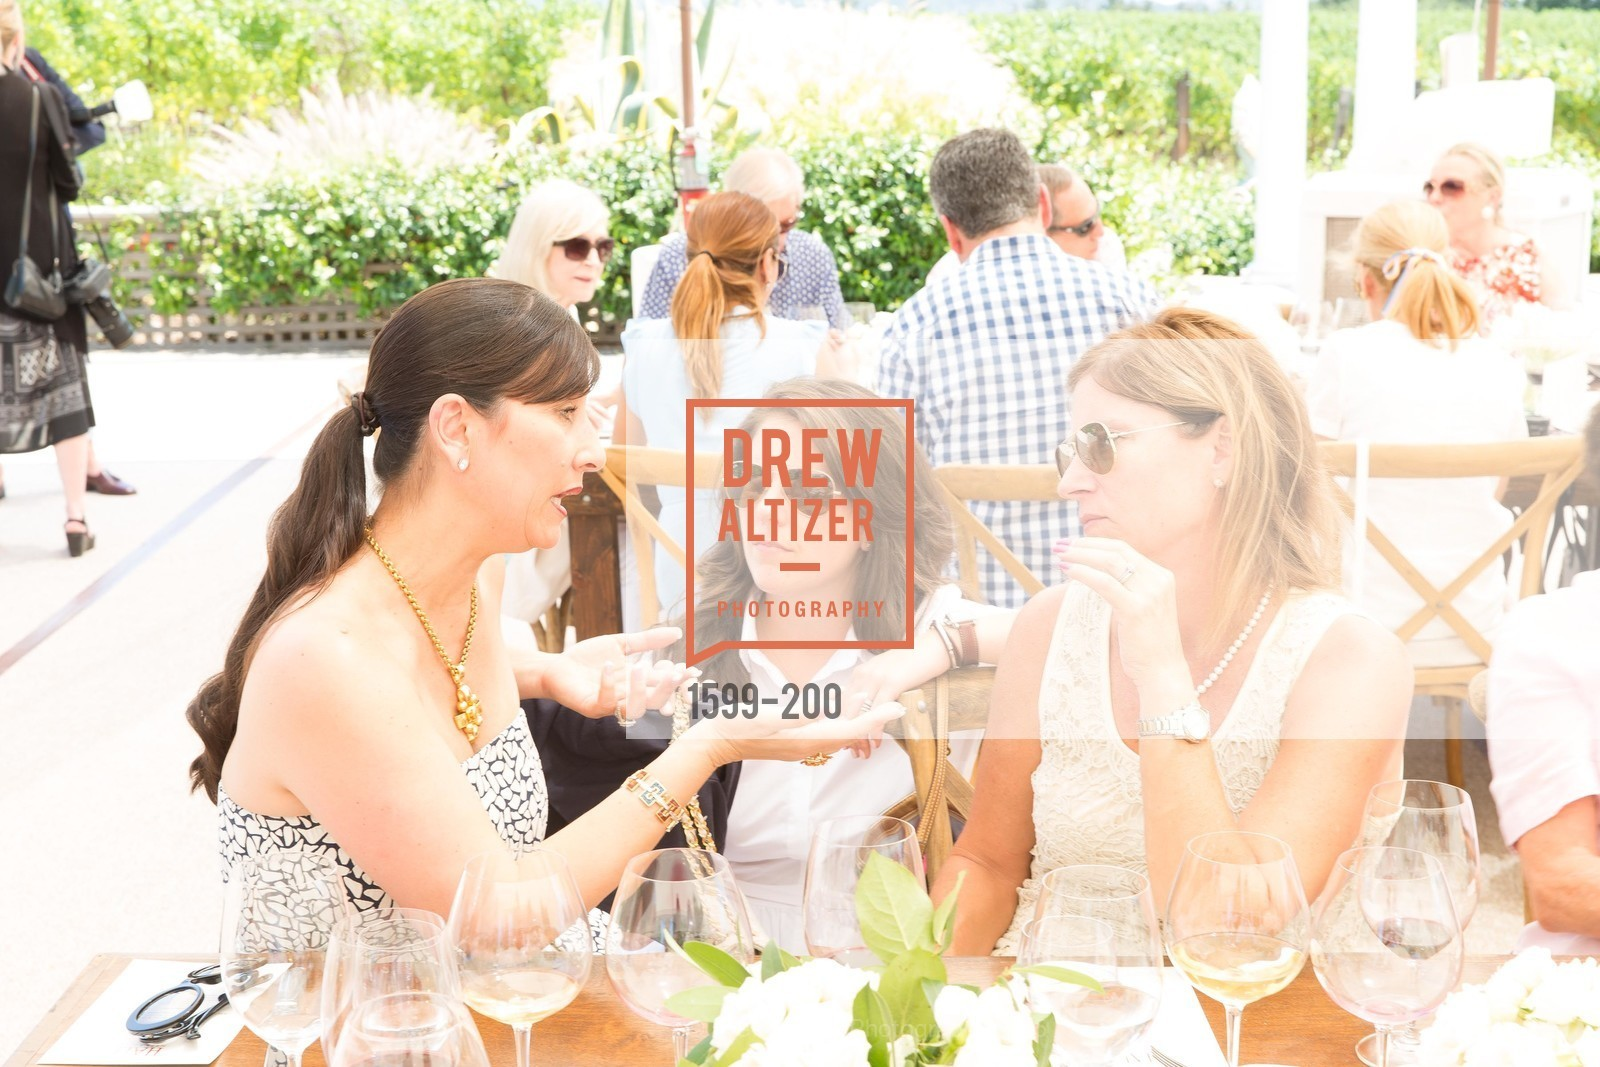 Extras, Festival del Sole Brunello Cucinelli Luncheon Hosted by Hall Wines and Neiman Marcus, July 19th, 2015, Photo,Drew Altizer, Drew Altizer Photography, full-service agency, private events, San Francisco photographer, photographer california